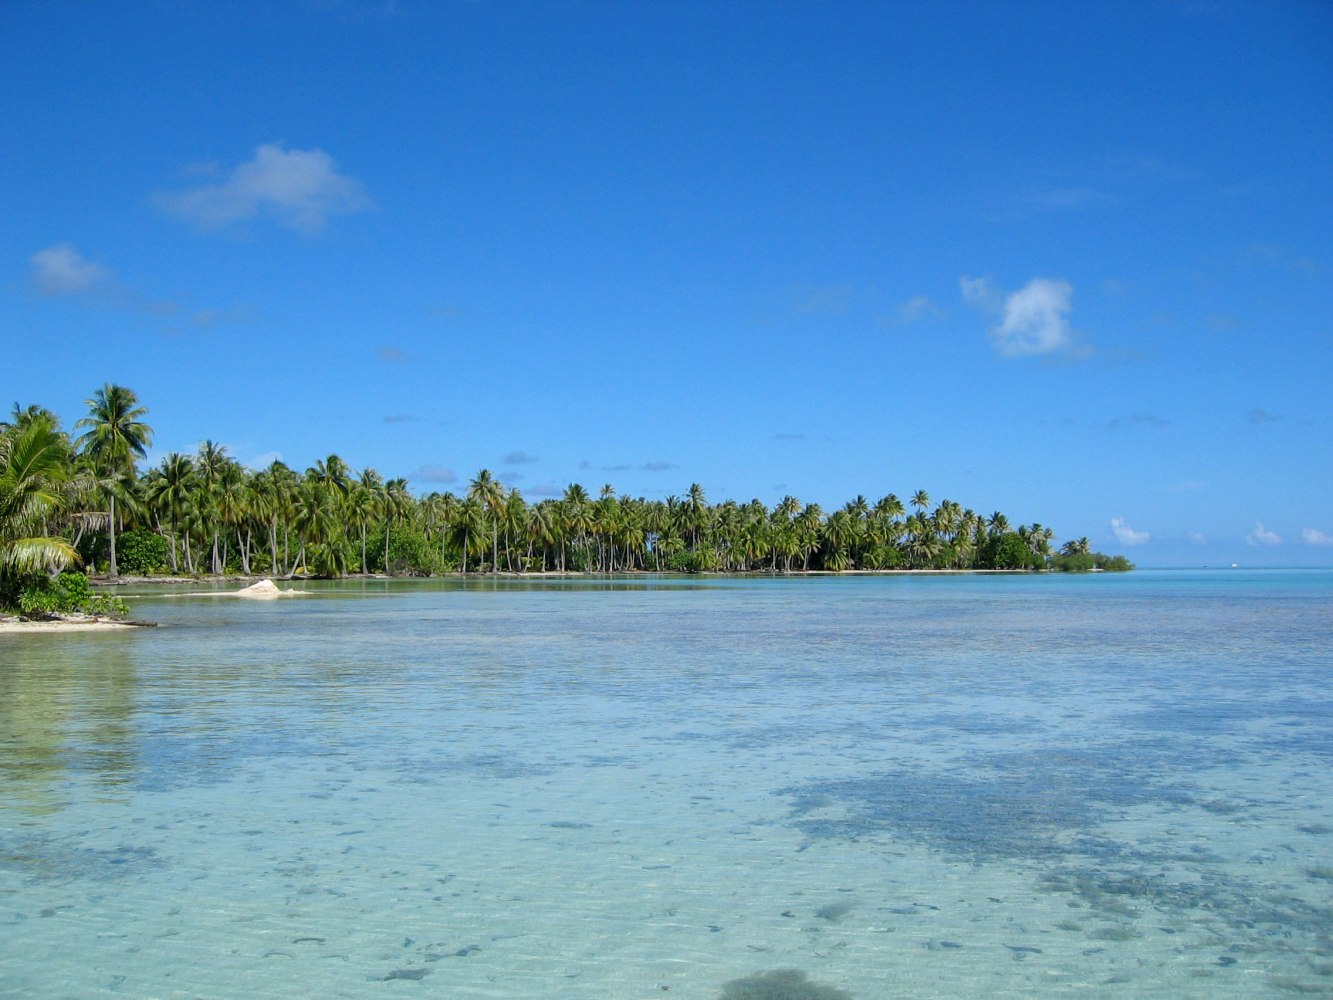 Private islands for sale motu rauoro french polynesia for French polynesia islands for sale